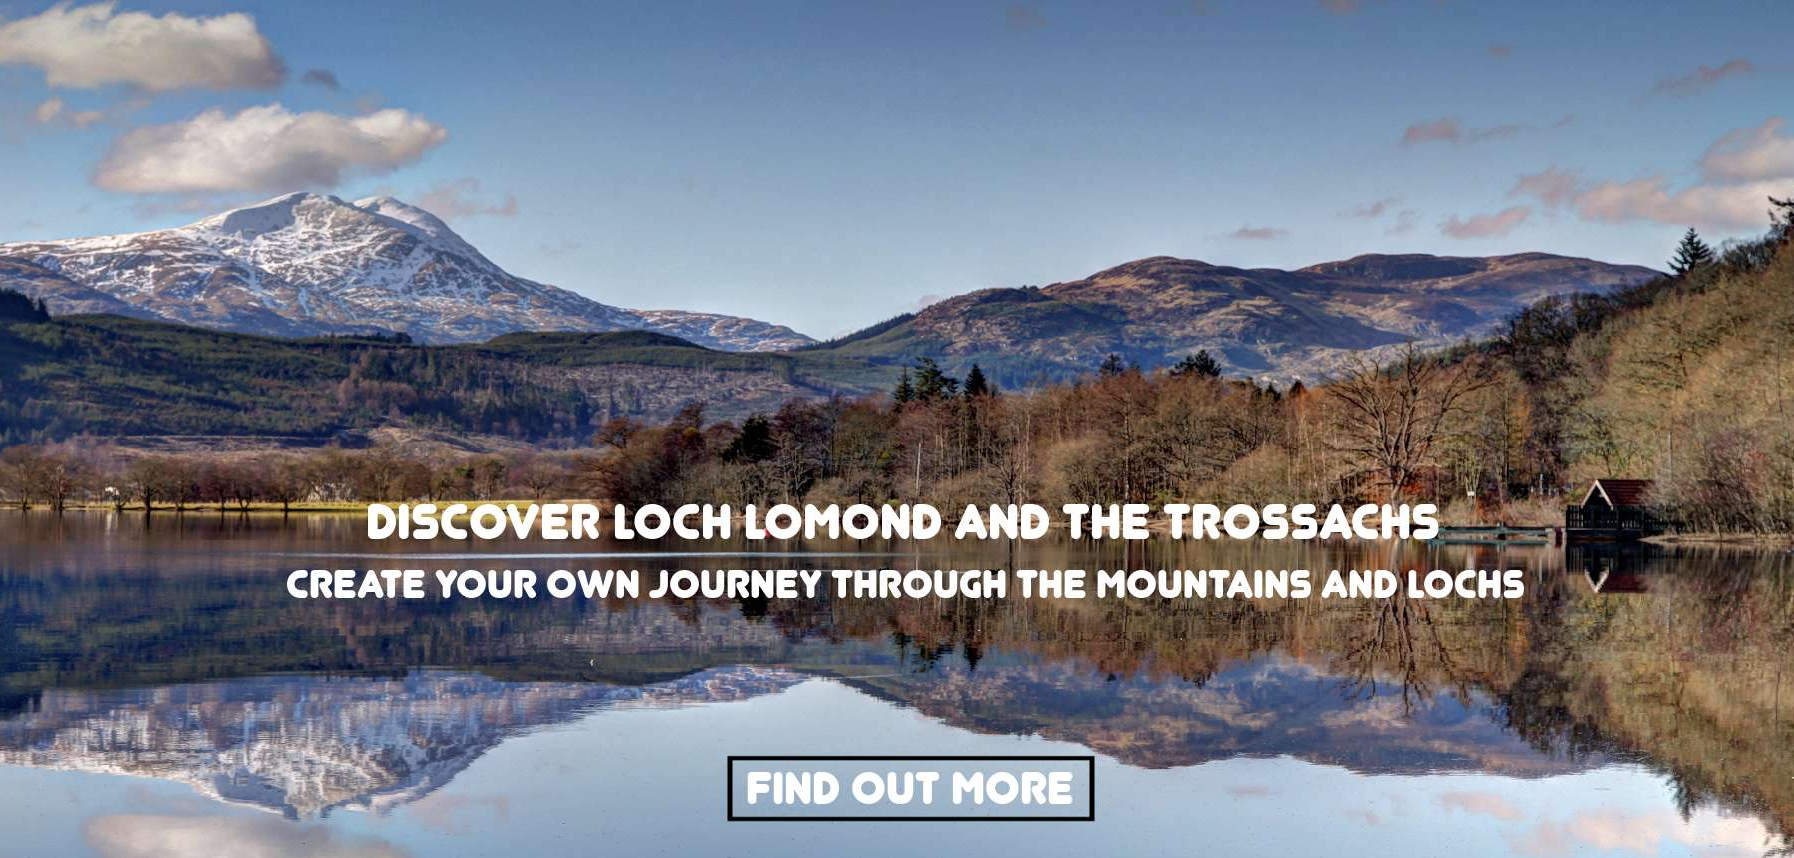 Discover Loch Lomond and The Trossachs